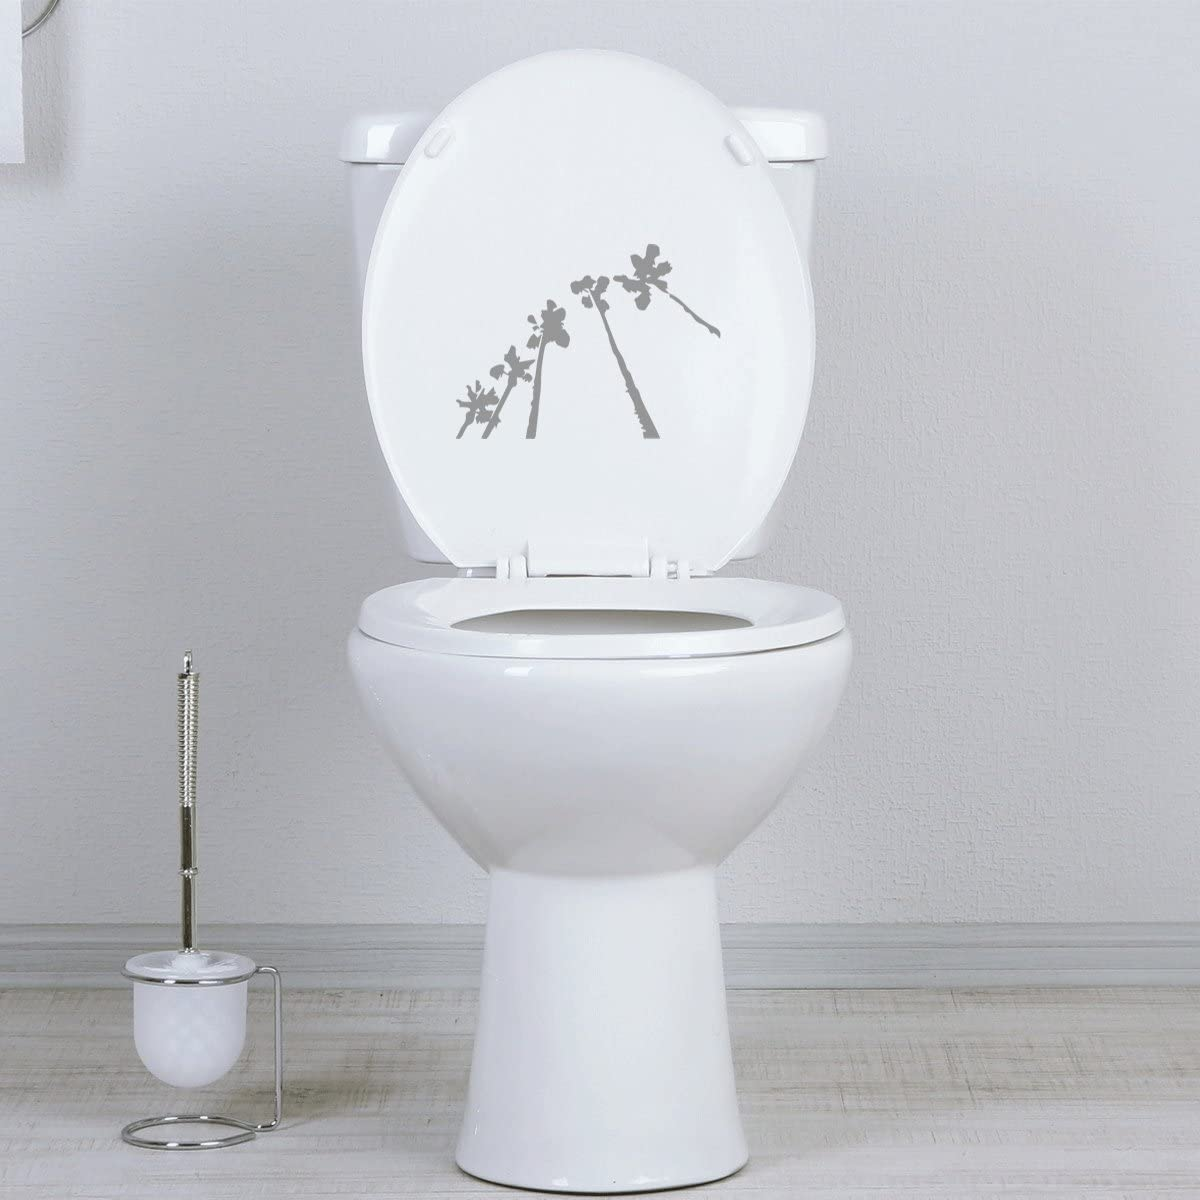 StickAny Bathroom Decal Series Palm Row Up Sticker for Toilet Bowl Bath Seat Black